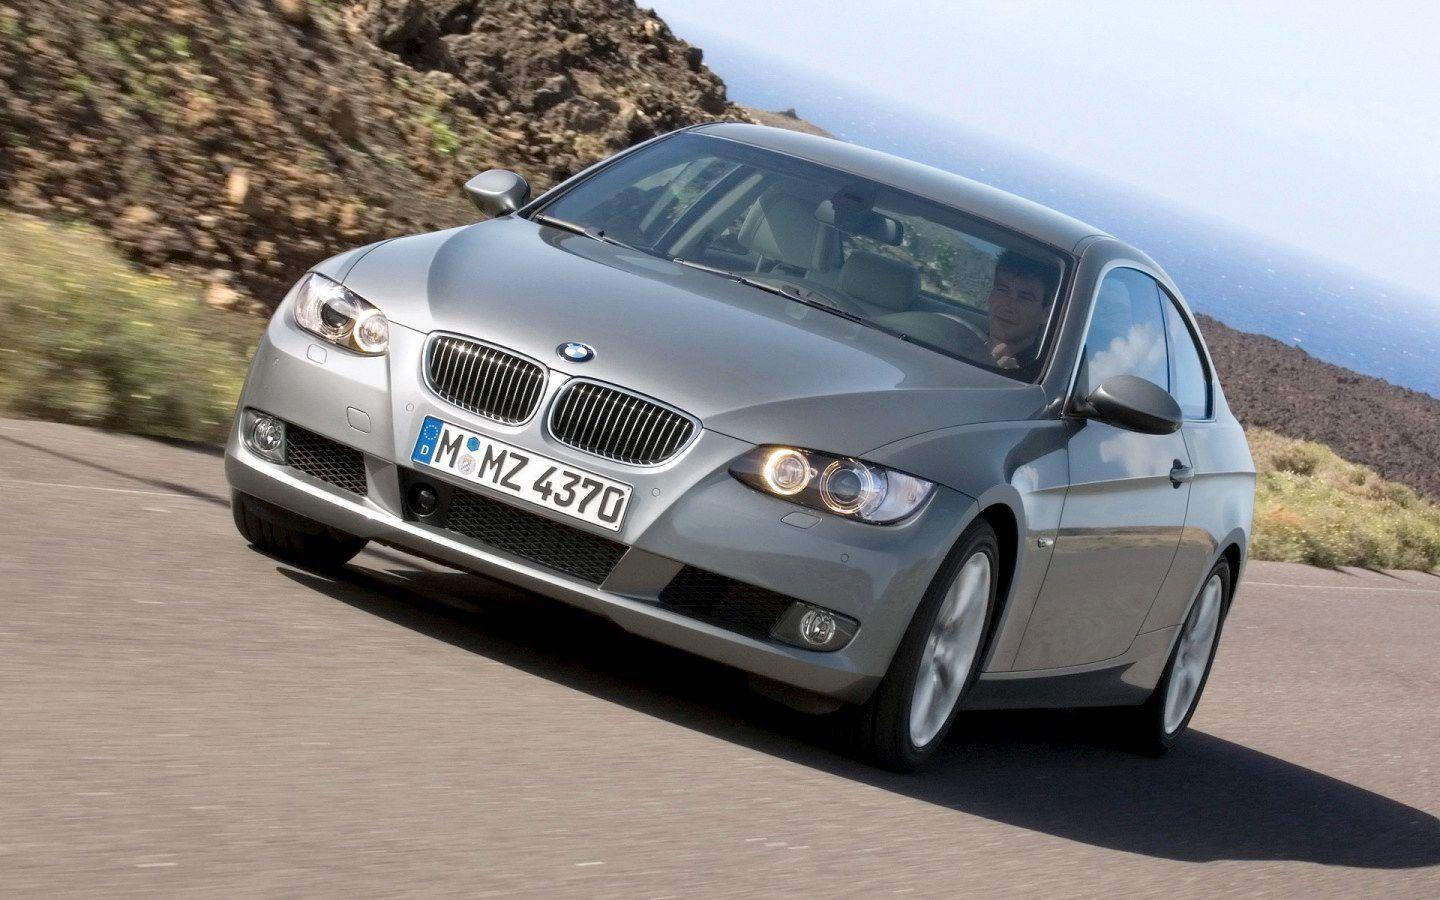 2007 BMW 335i Coupe Wallpaper 01 - 1440x900